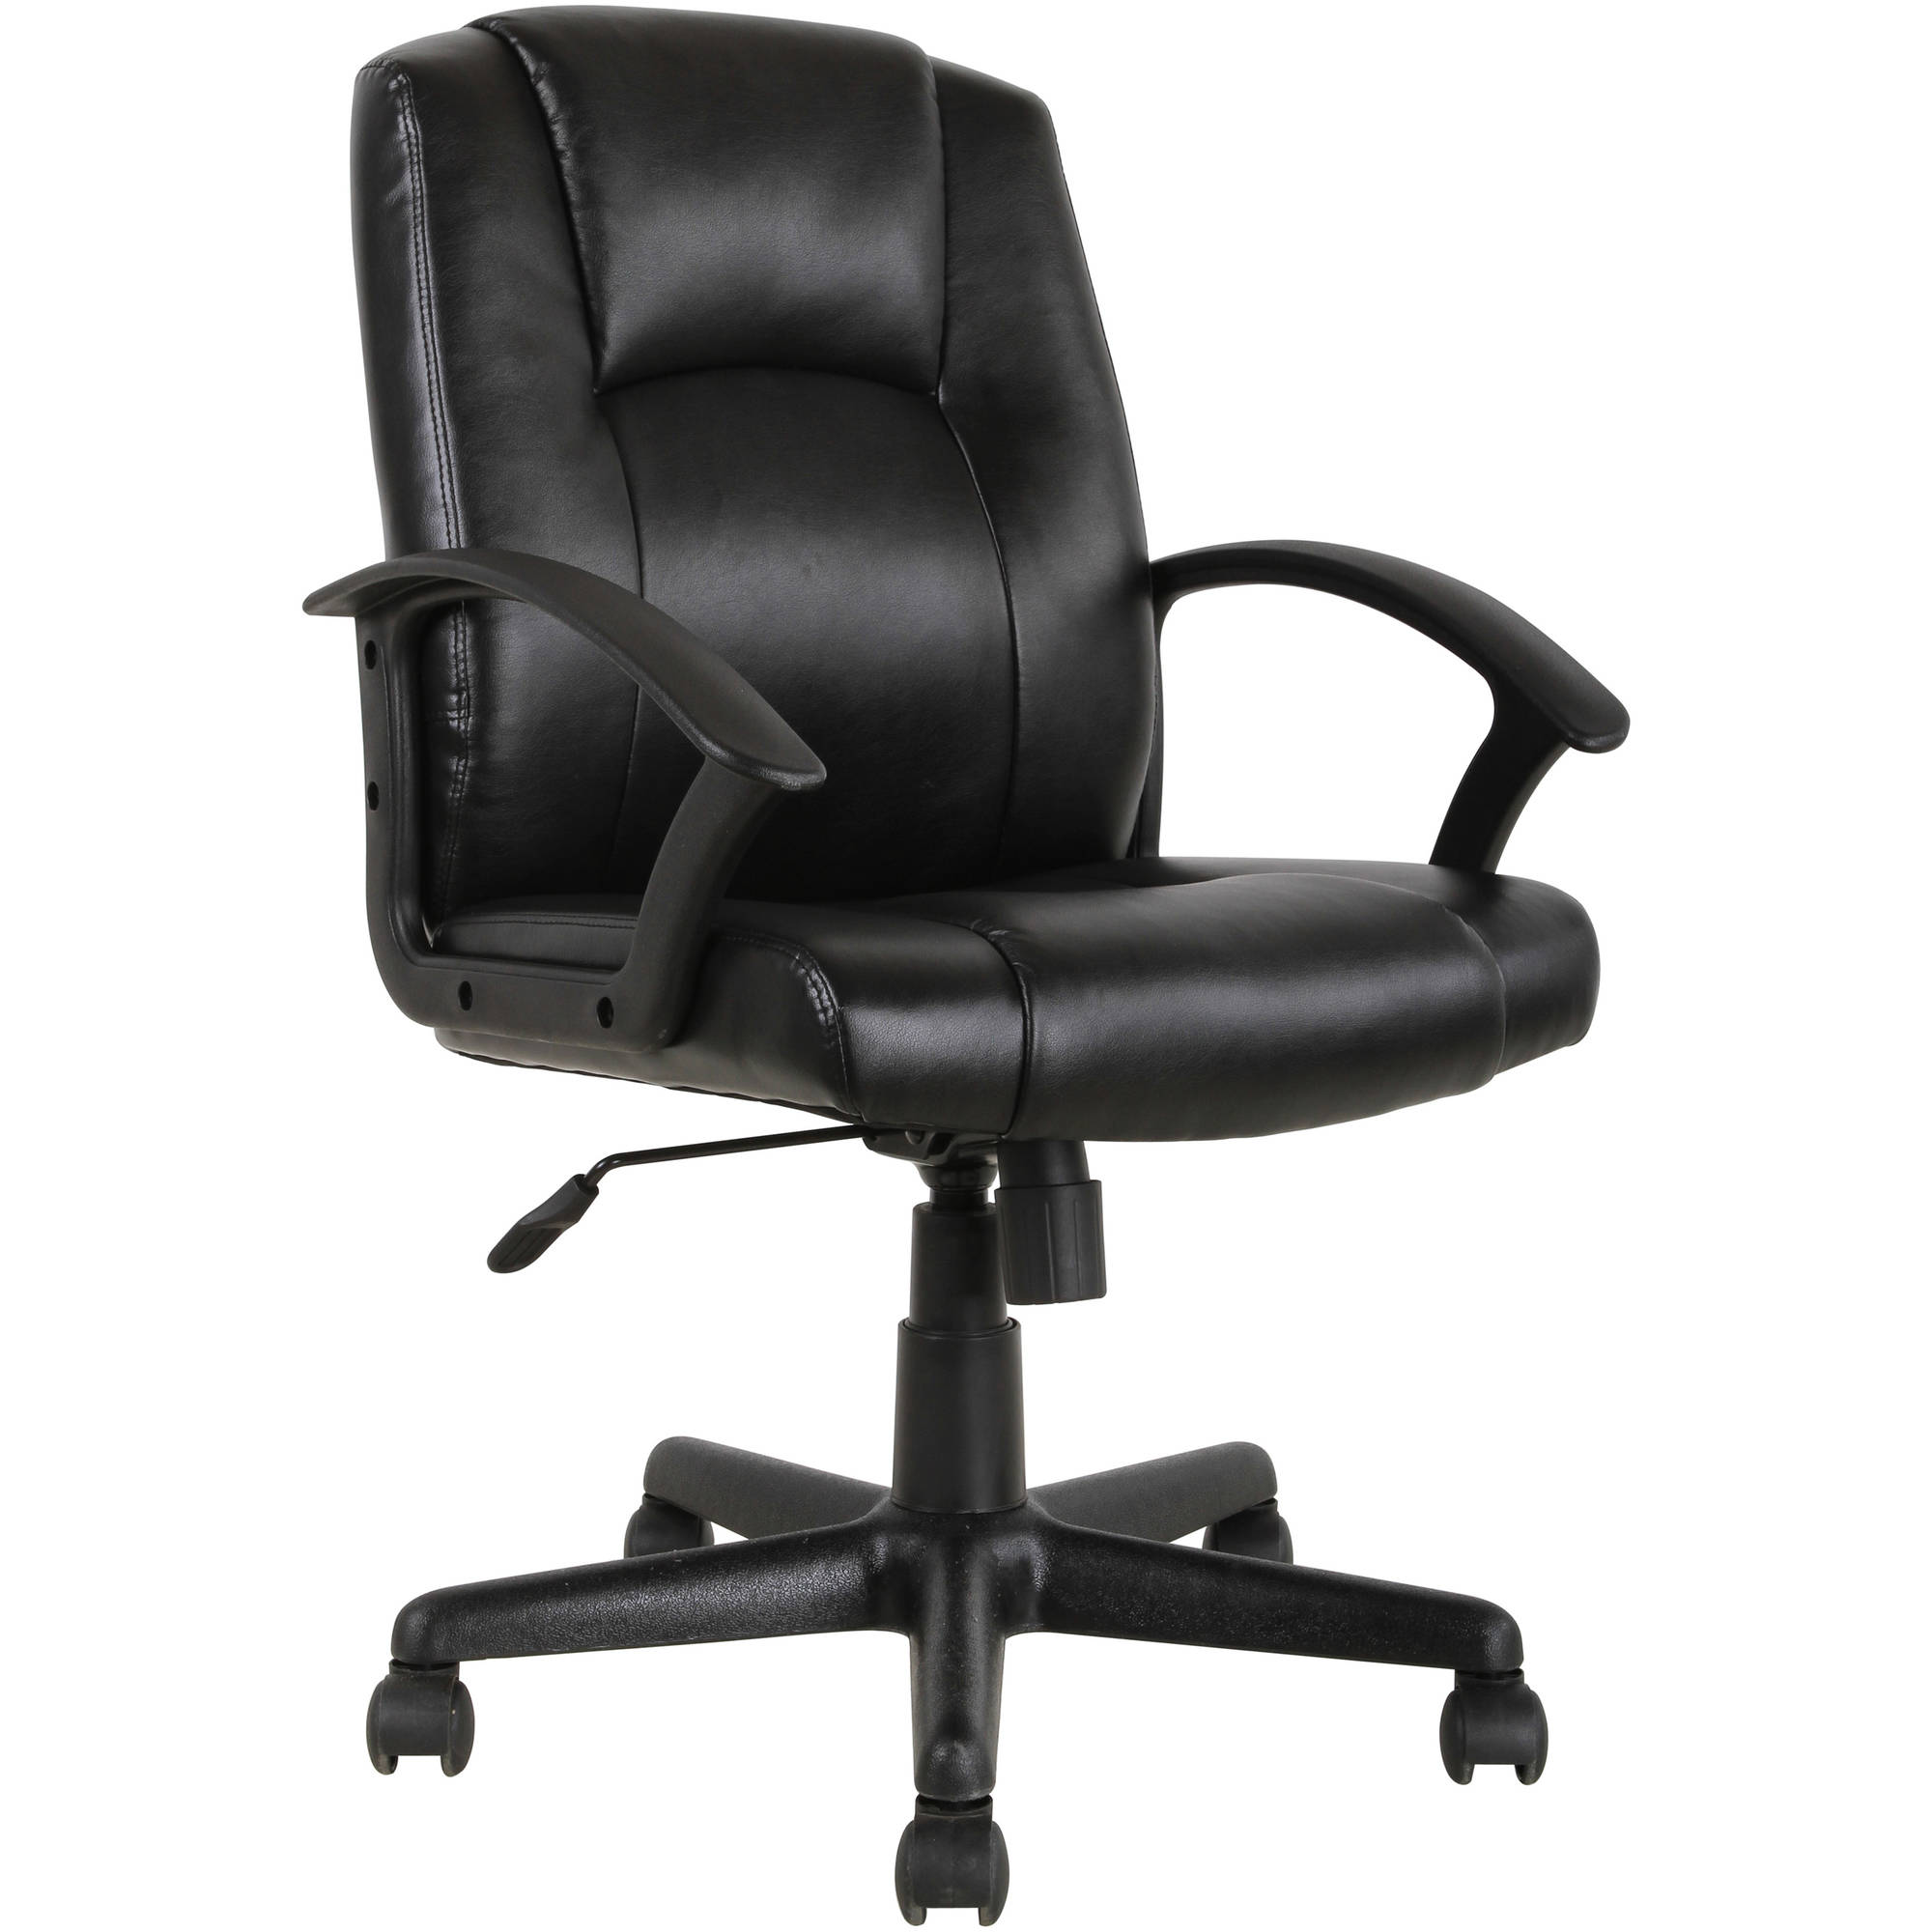 Office Chairs Walmart >> Mainstays Mid Back Leather Office Chair Black Walmart Com